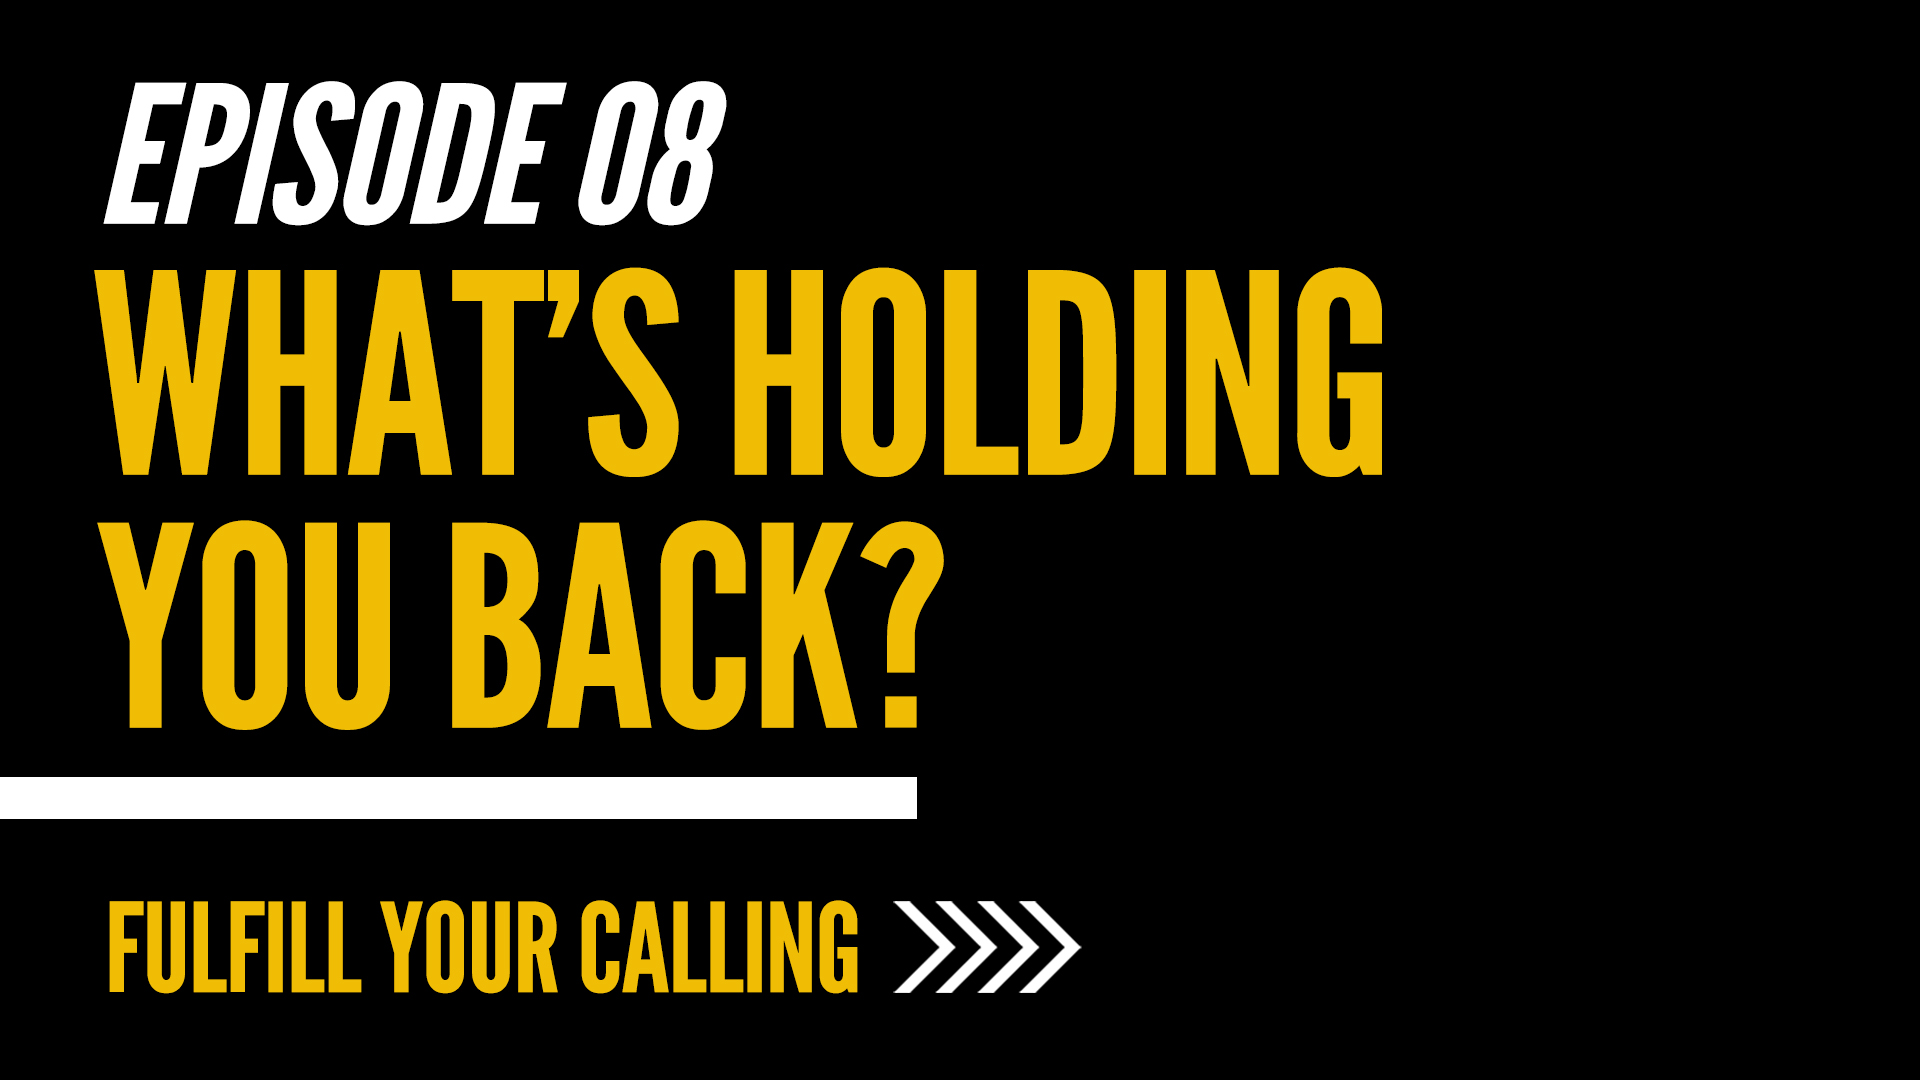 How to Fulfill Your Calling - Episode 8 with David Steele